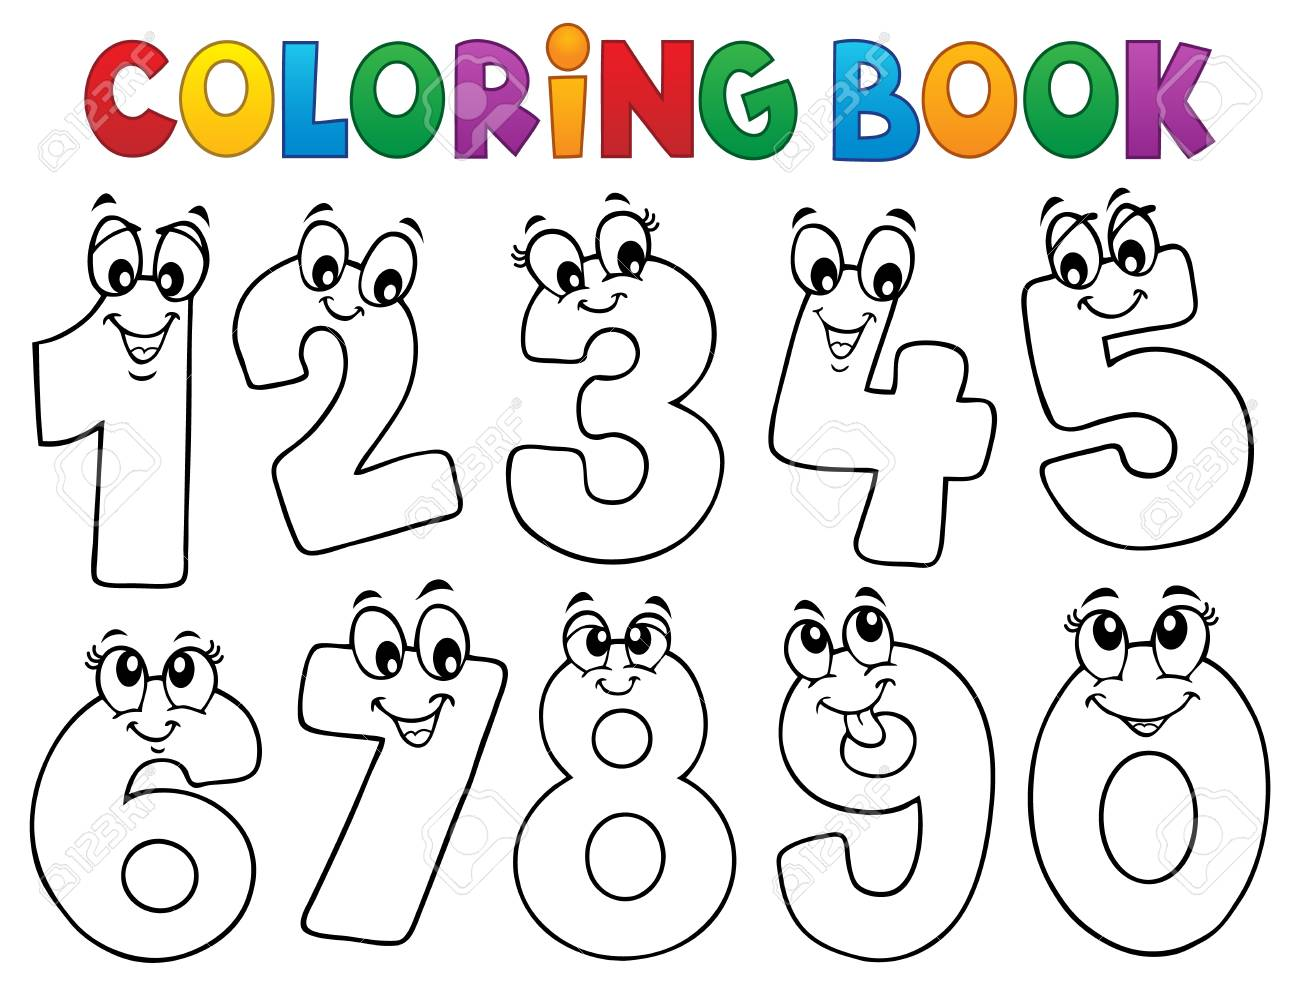 - Coloring Book Cartoon Numbers Set Illustration. Royalty Free